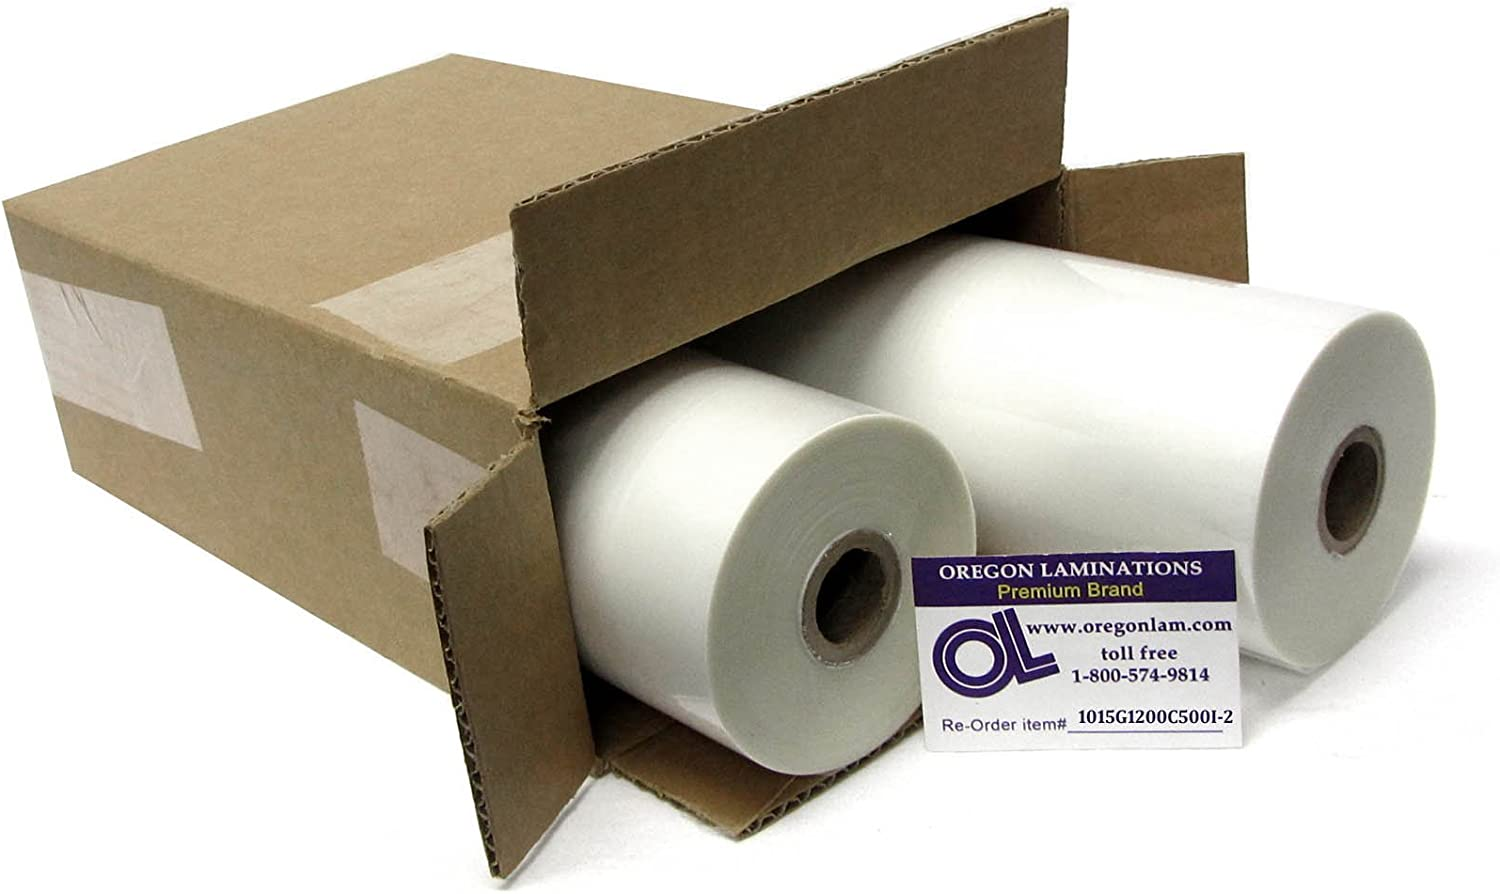 "1.5 mil 12"" x 500' Clear School Laminating Film 2 Pack 1"" Core w/ Laminator Webbing Card 616u2kArtTLSL1500_"